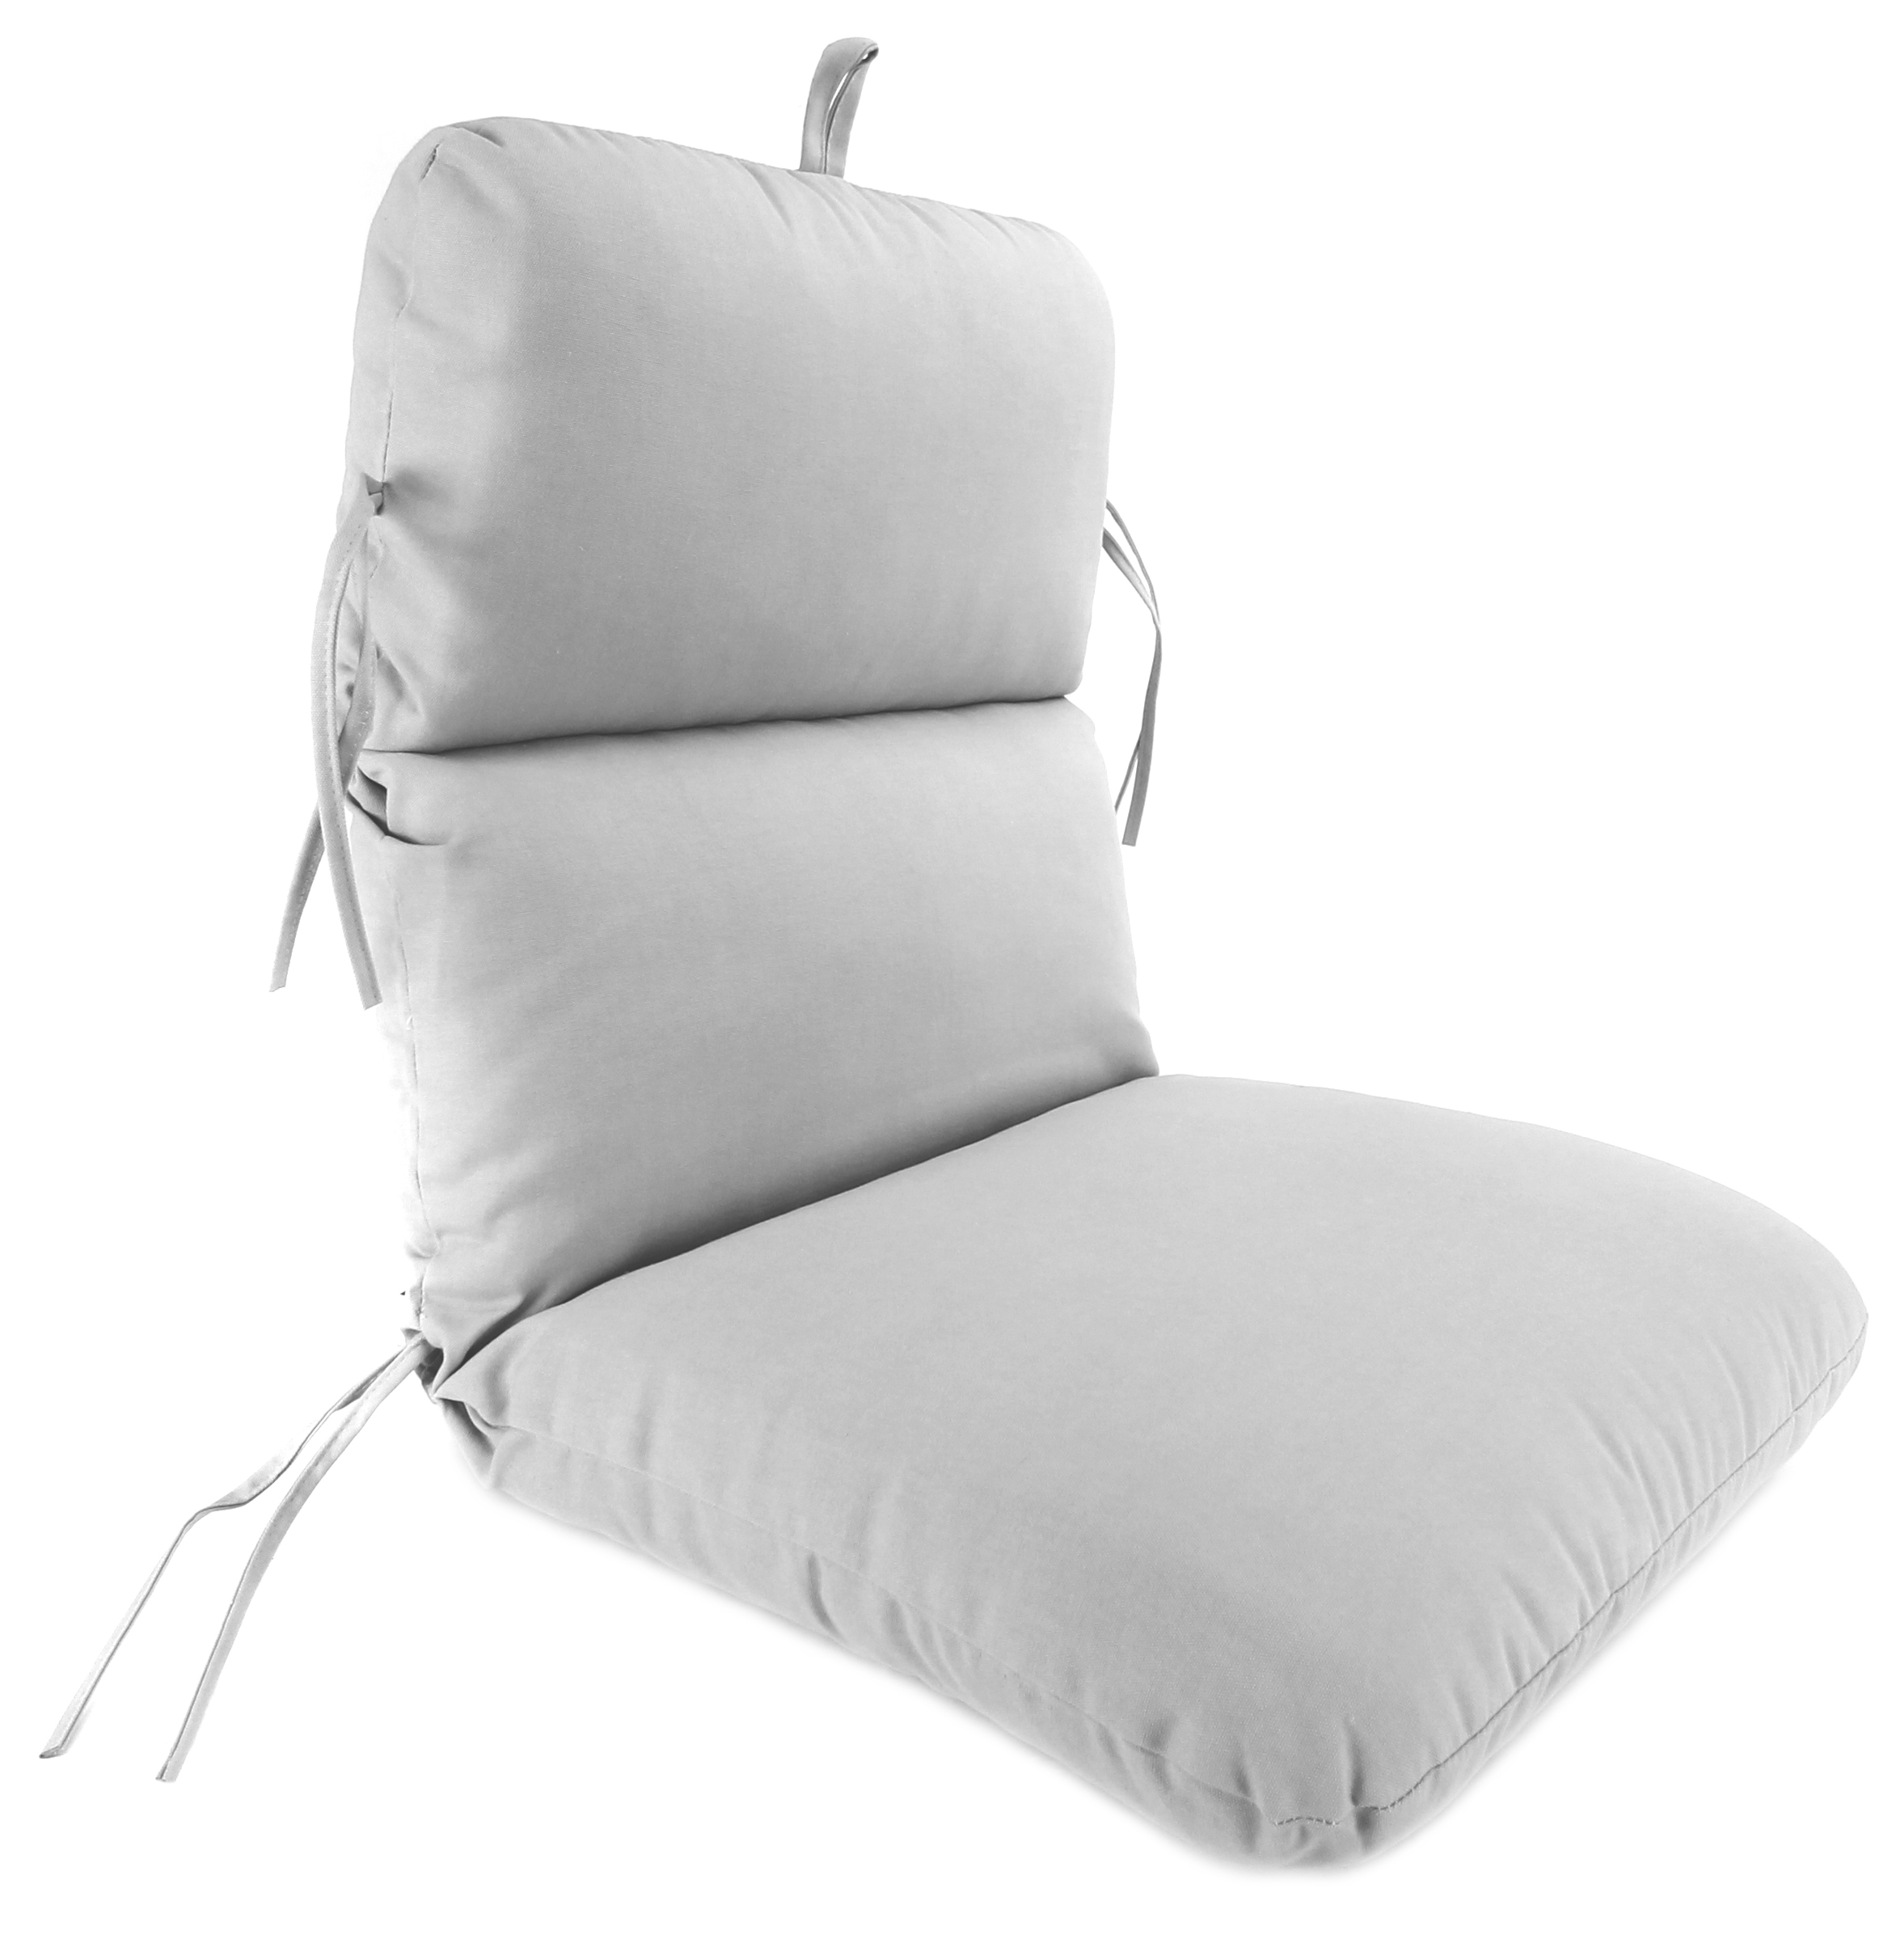 Universal Chair Cushion 22 x 45 x 4